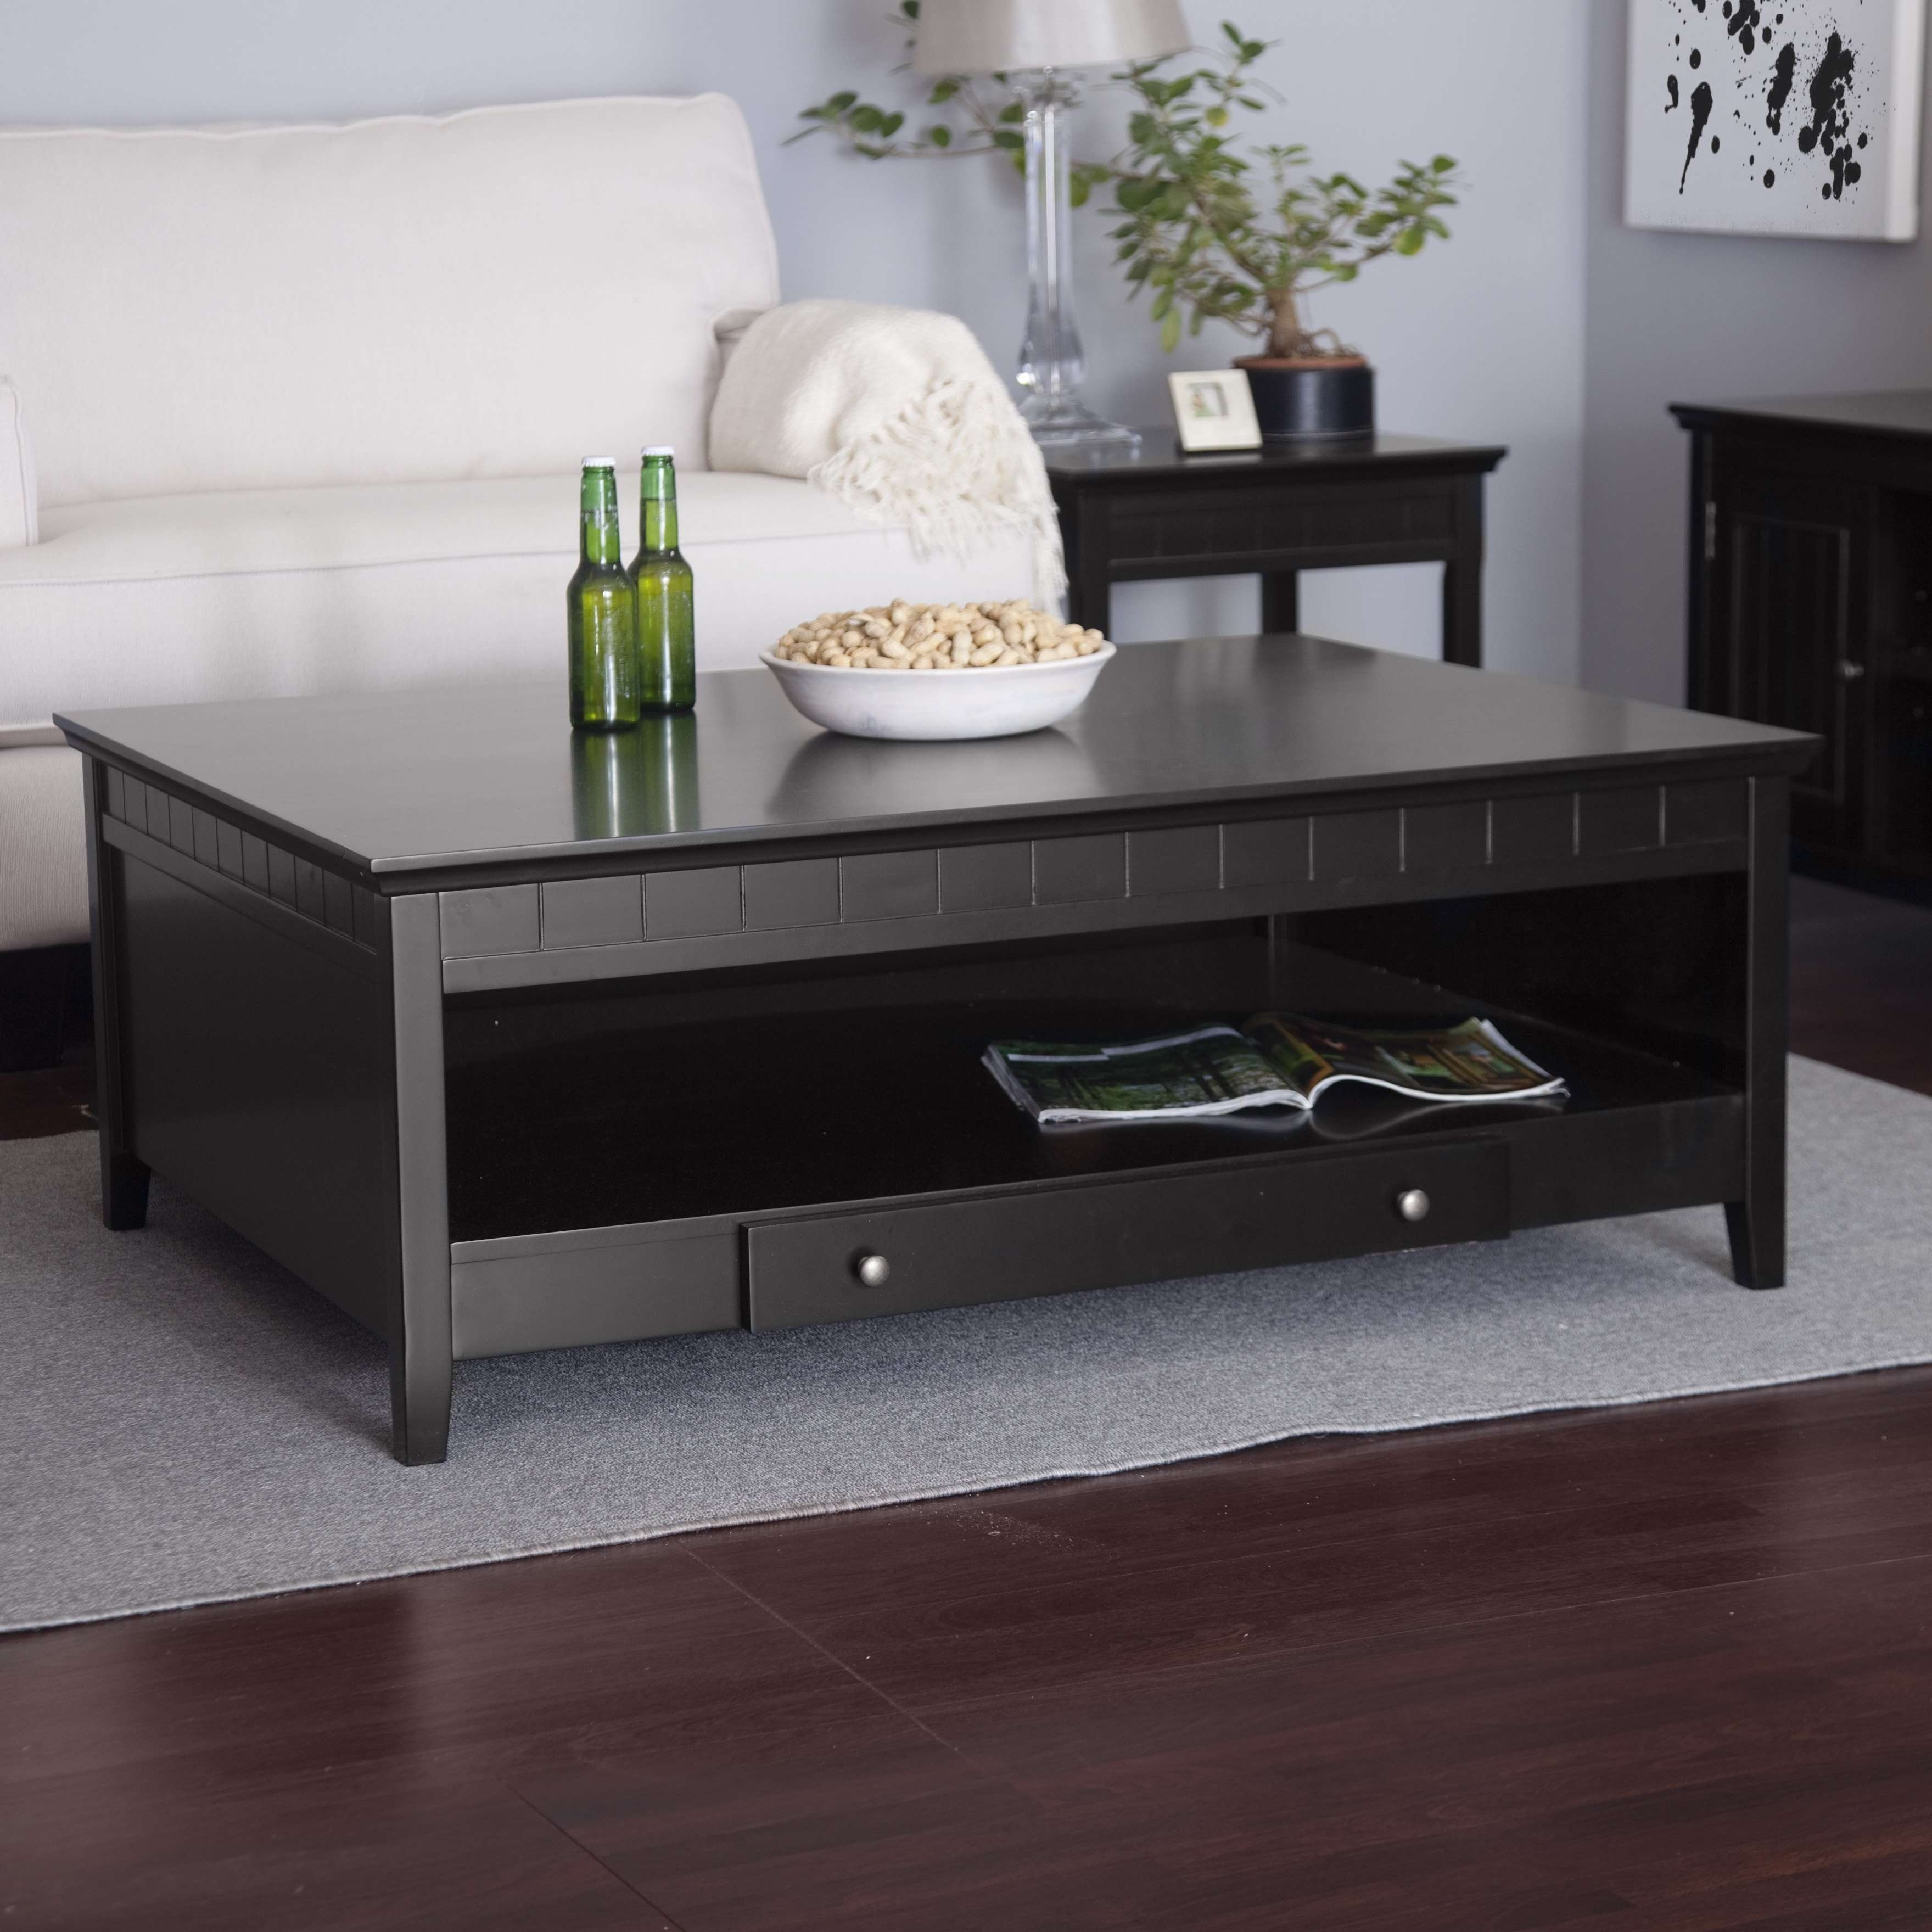 Most Current Square Coffee Table With Storage Drawers With Regard To Furniture (View 19 of 20)